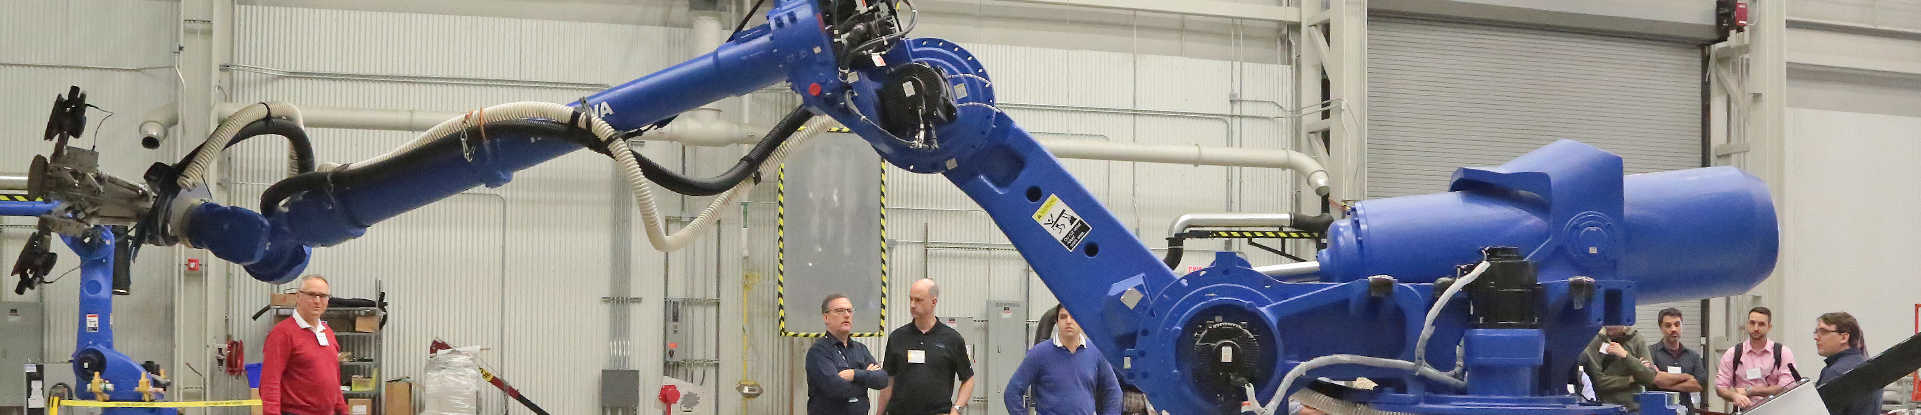 Podcast-Matt Robinson discusses robots in the real world on SwRI's new podcast